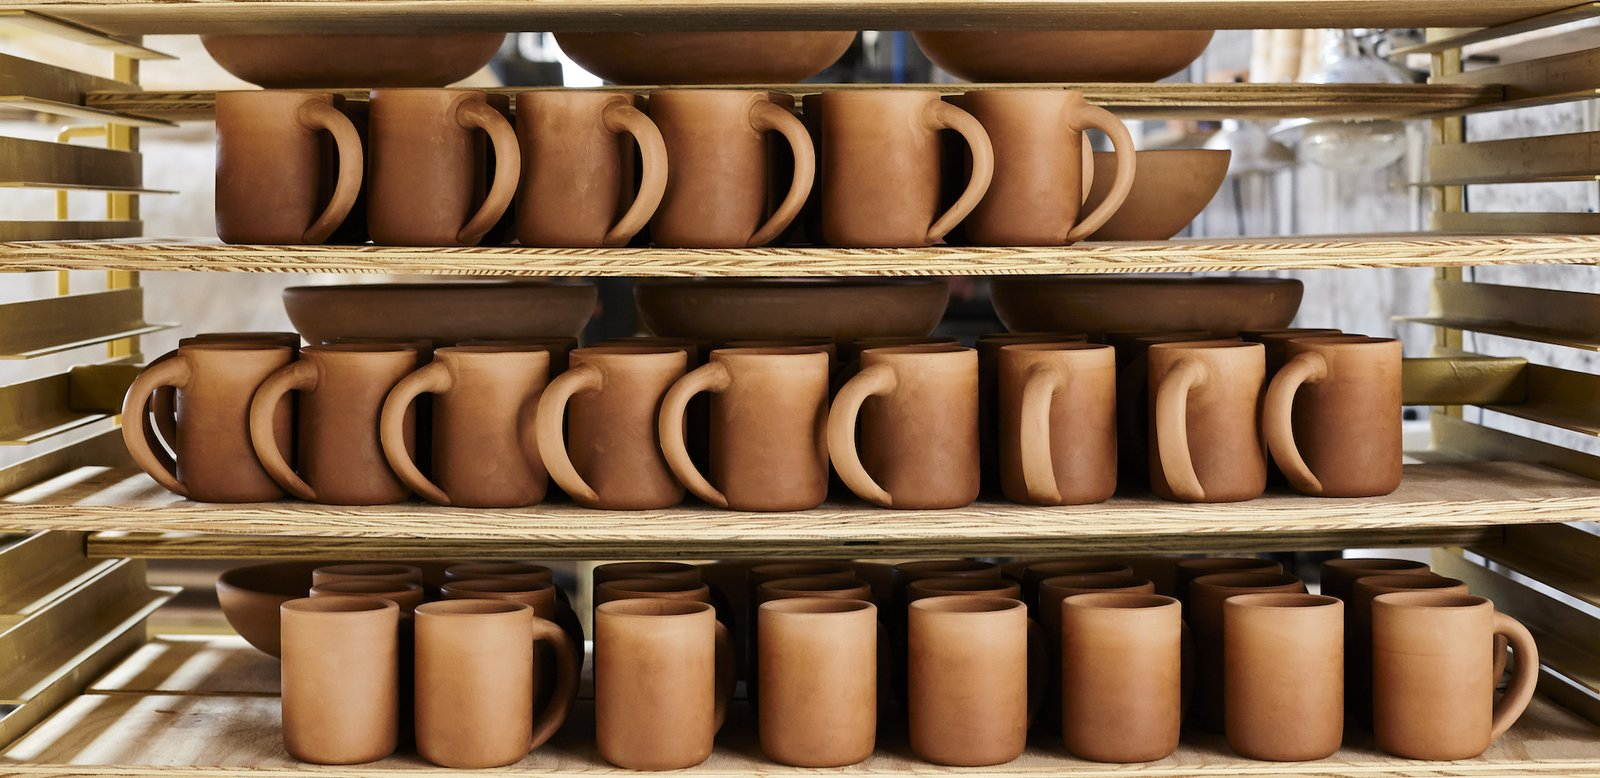 Stacks on stacks of East Fork Pottery's The Mug waiting to be glazed